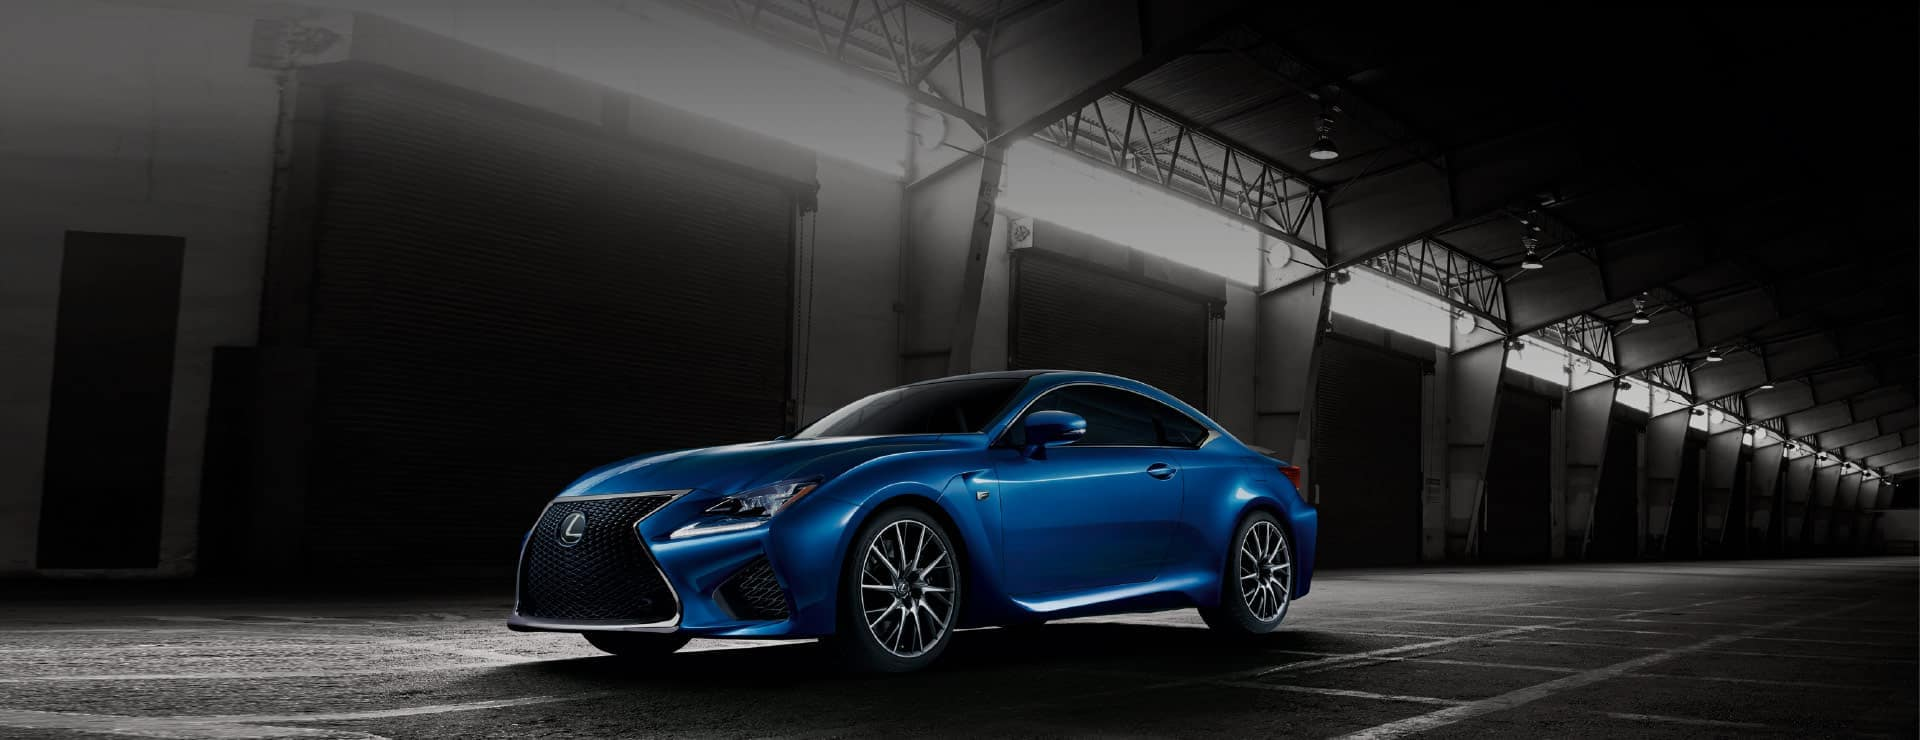 Blue Lexus parked in front of loading docs